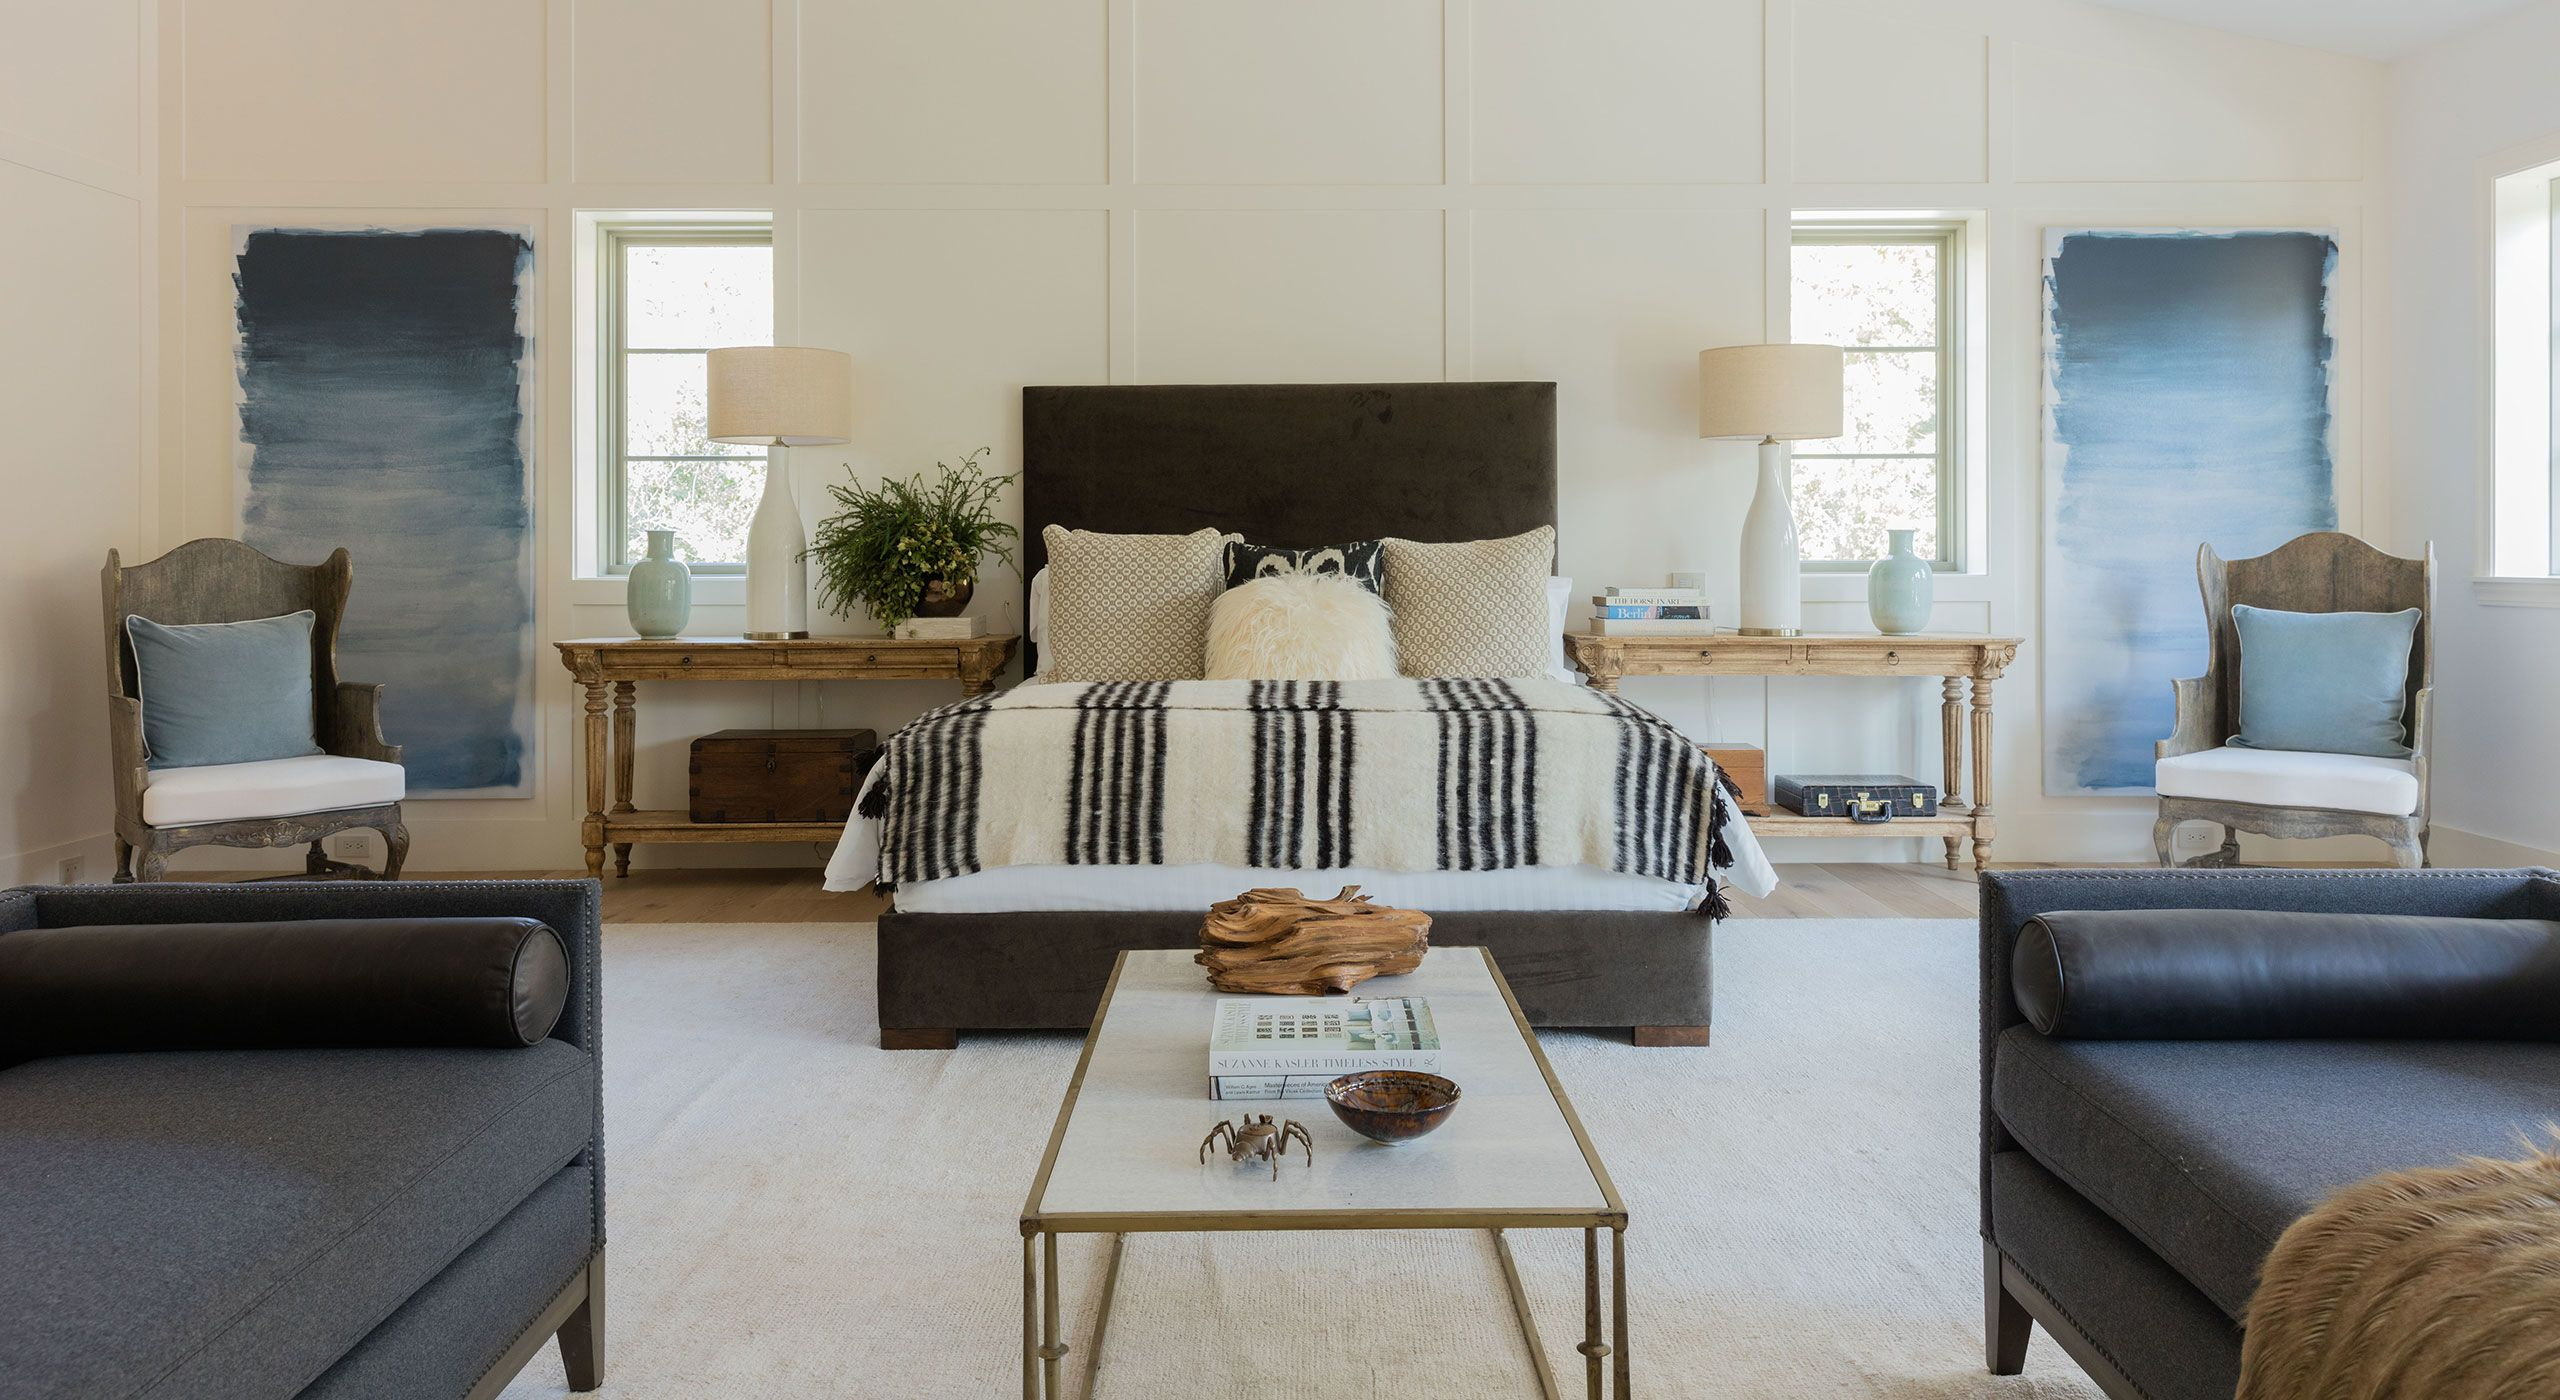 in dark put fabric like and dreamy a bedroom interior bedrooms these state wall will design you dream